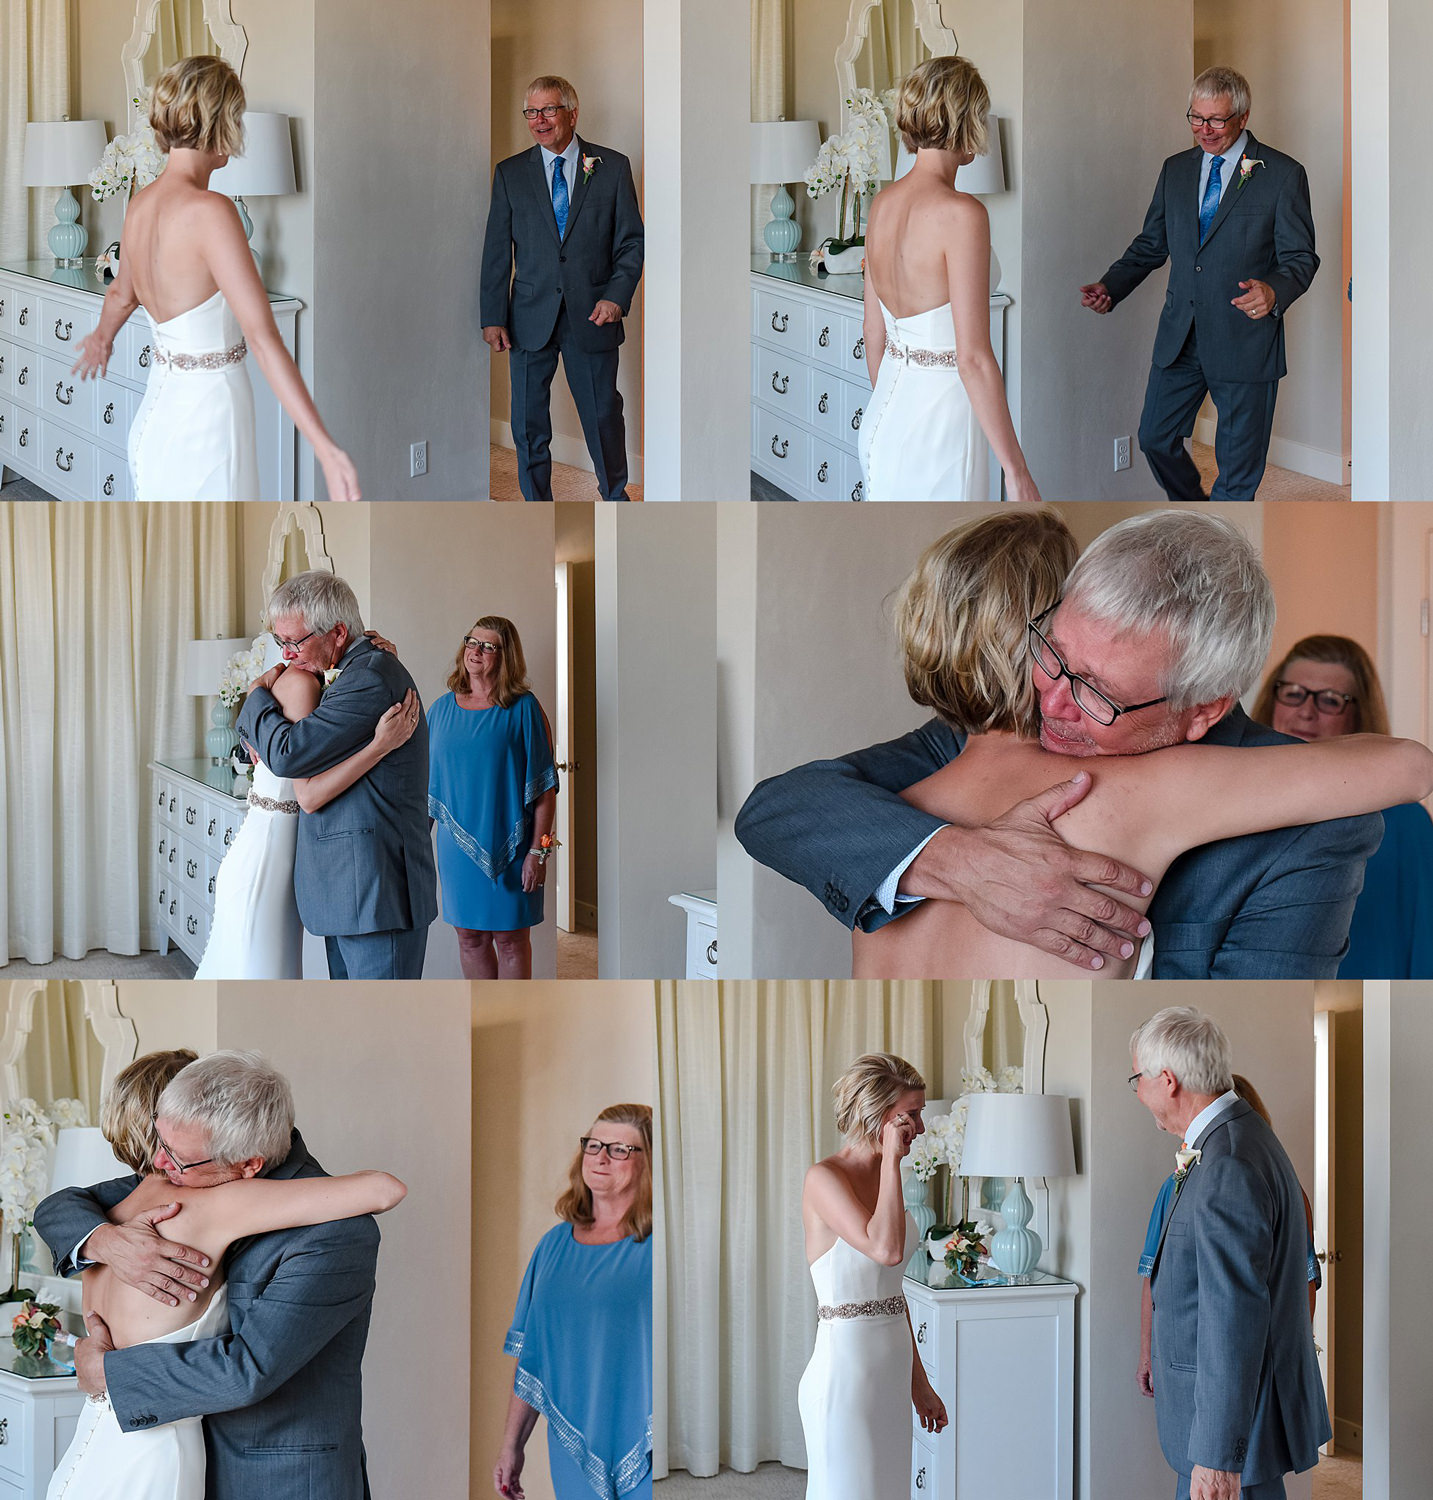 father-daughter-first-look-pictures-virginia-beach-wedding-melissa-bliss-photography.jpg